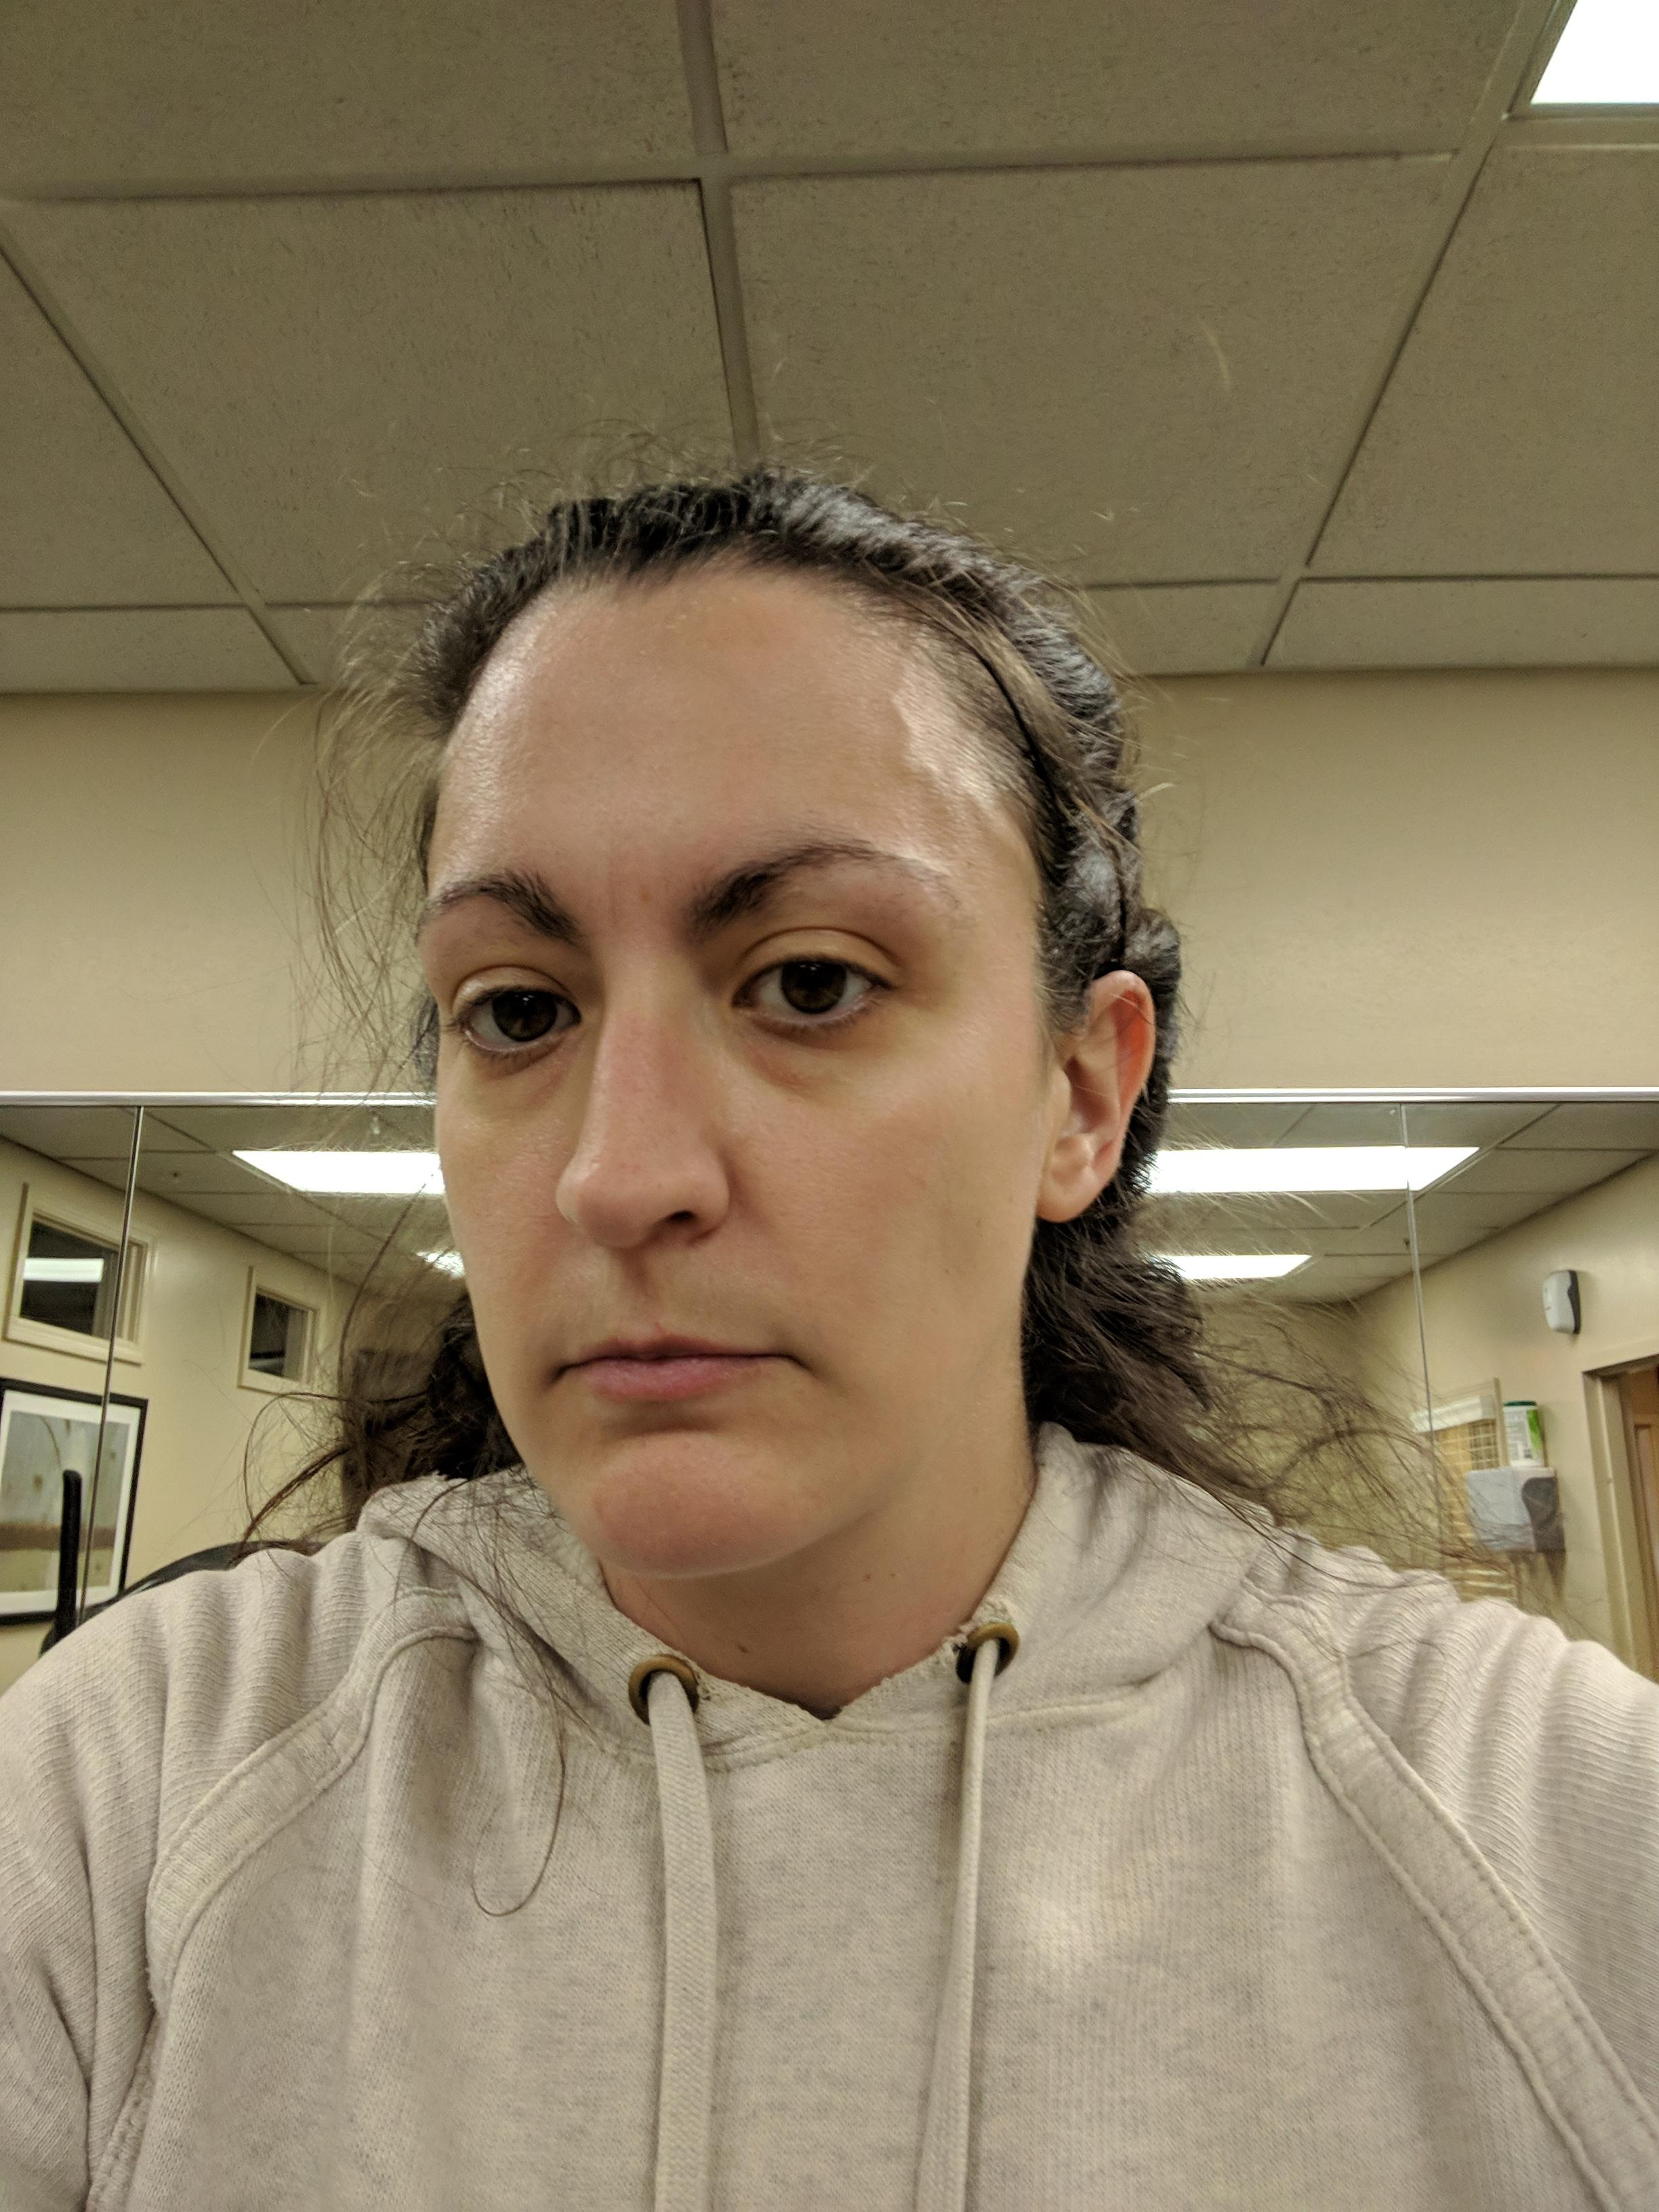 w1d2 my forehead vein